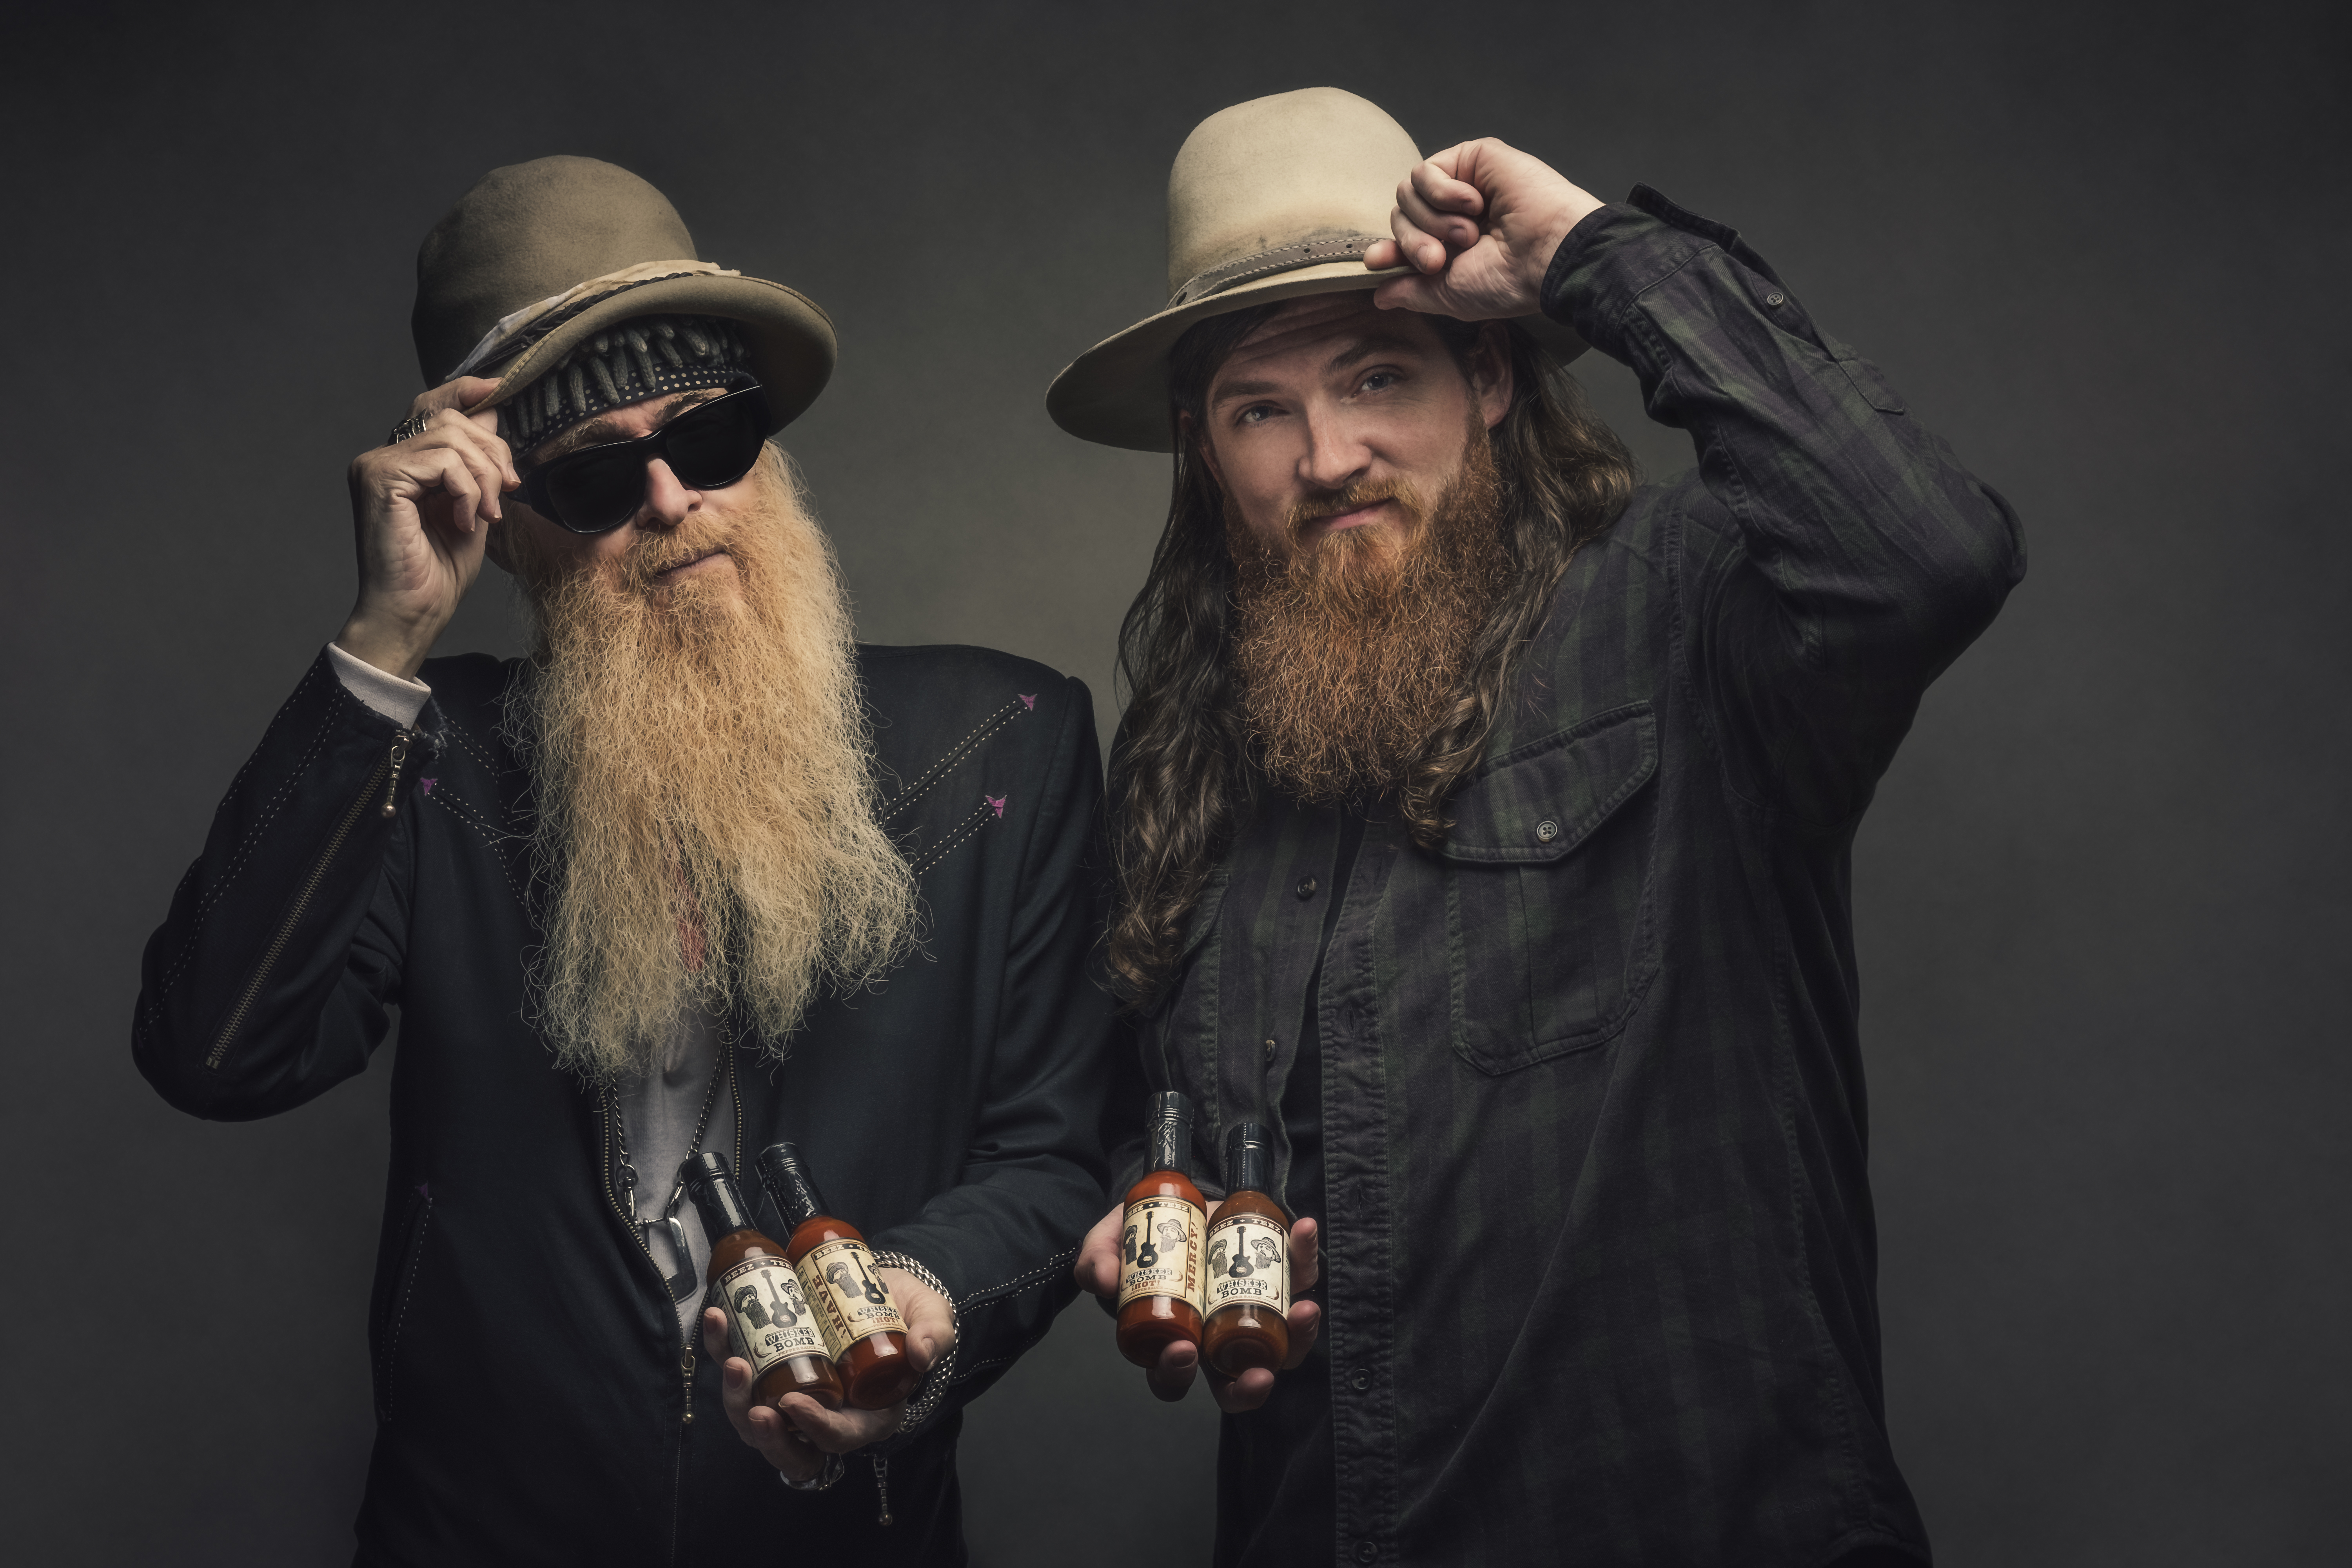 Defying description: ZZ Tops Billy Gibbons on Prince